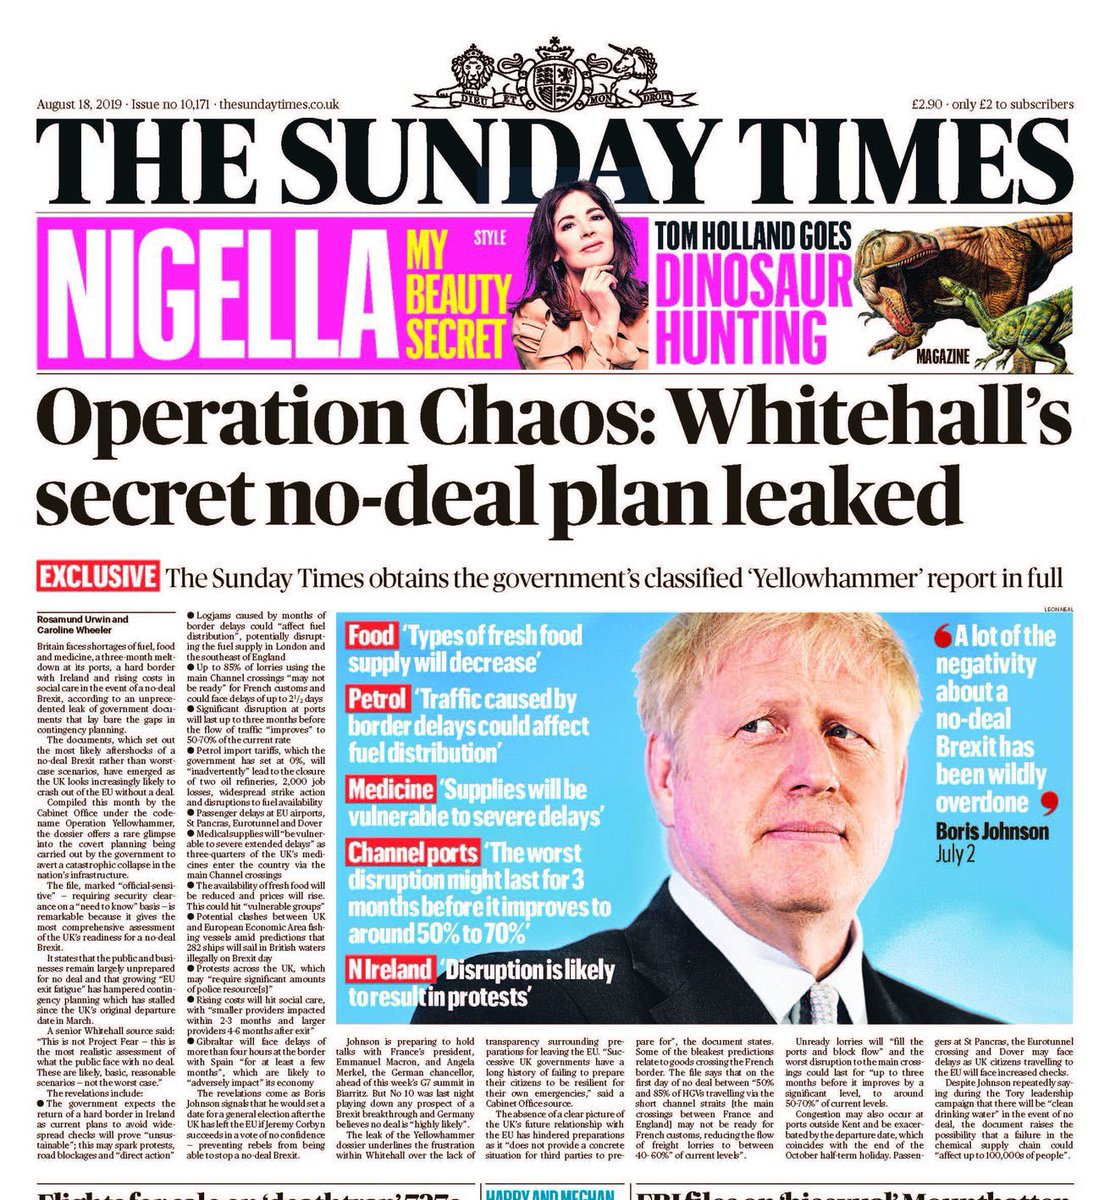 People didn't vote for chaos, food and medicine shortages and political unrest. Opposition parties must work with @jeremycorbyn and Labour to stop this Government's reckless charge towards a catastrophic no-deal Brexit.